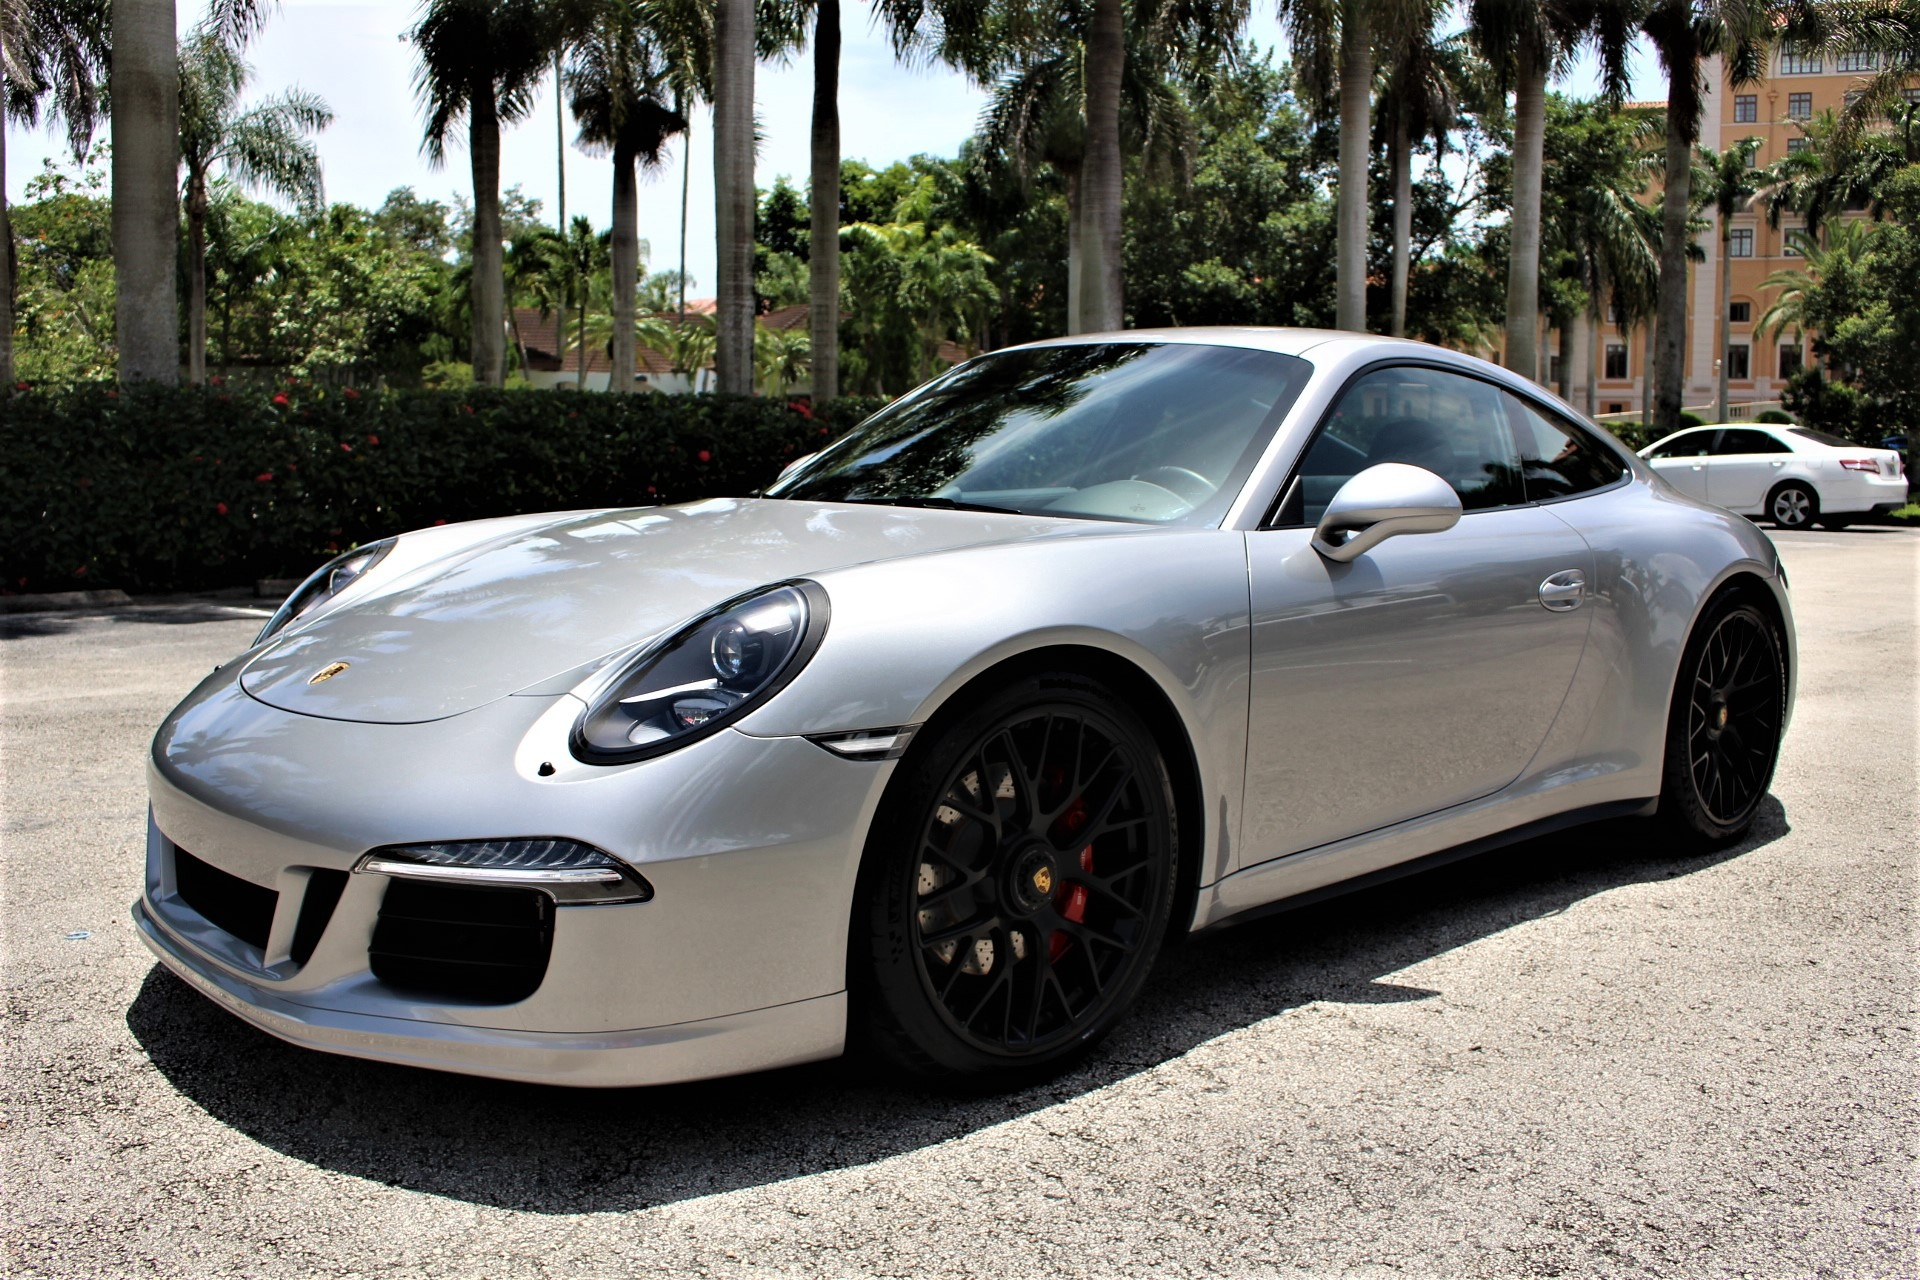 Used 2016 Porsche 911 Carrera GTS for sale Sold at The Gables Sports Cars in Miami FL 33146 3